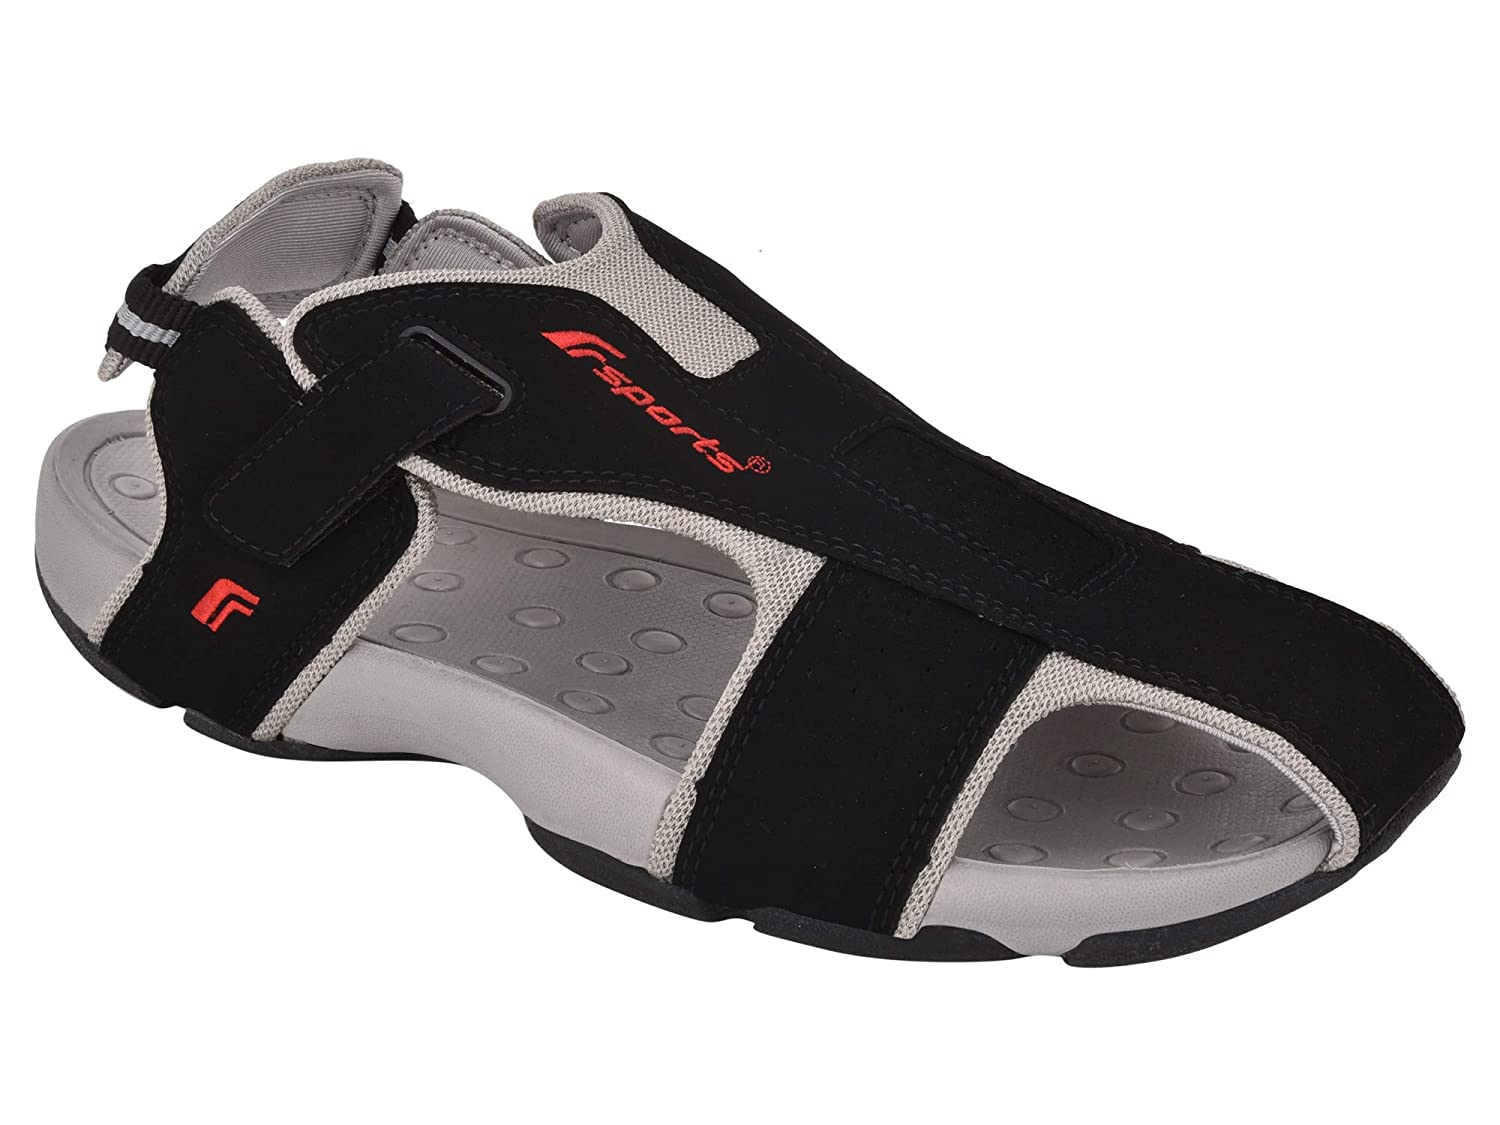 5c359a64aec16a Fsports SP4 Series Black Casual Sandal for Men  Buy Online at Low Prices in  India - Amazon.in